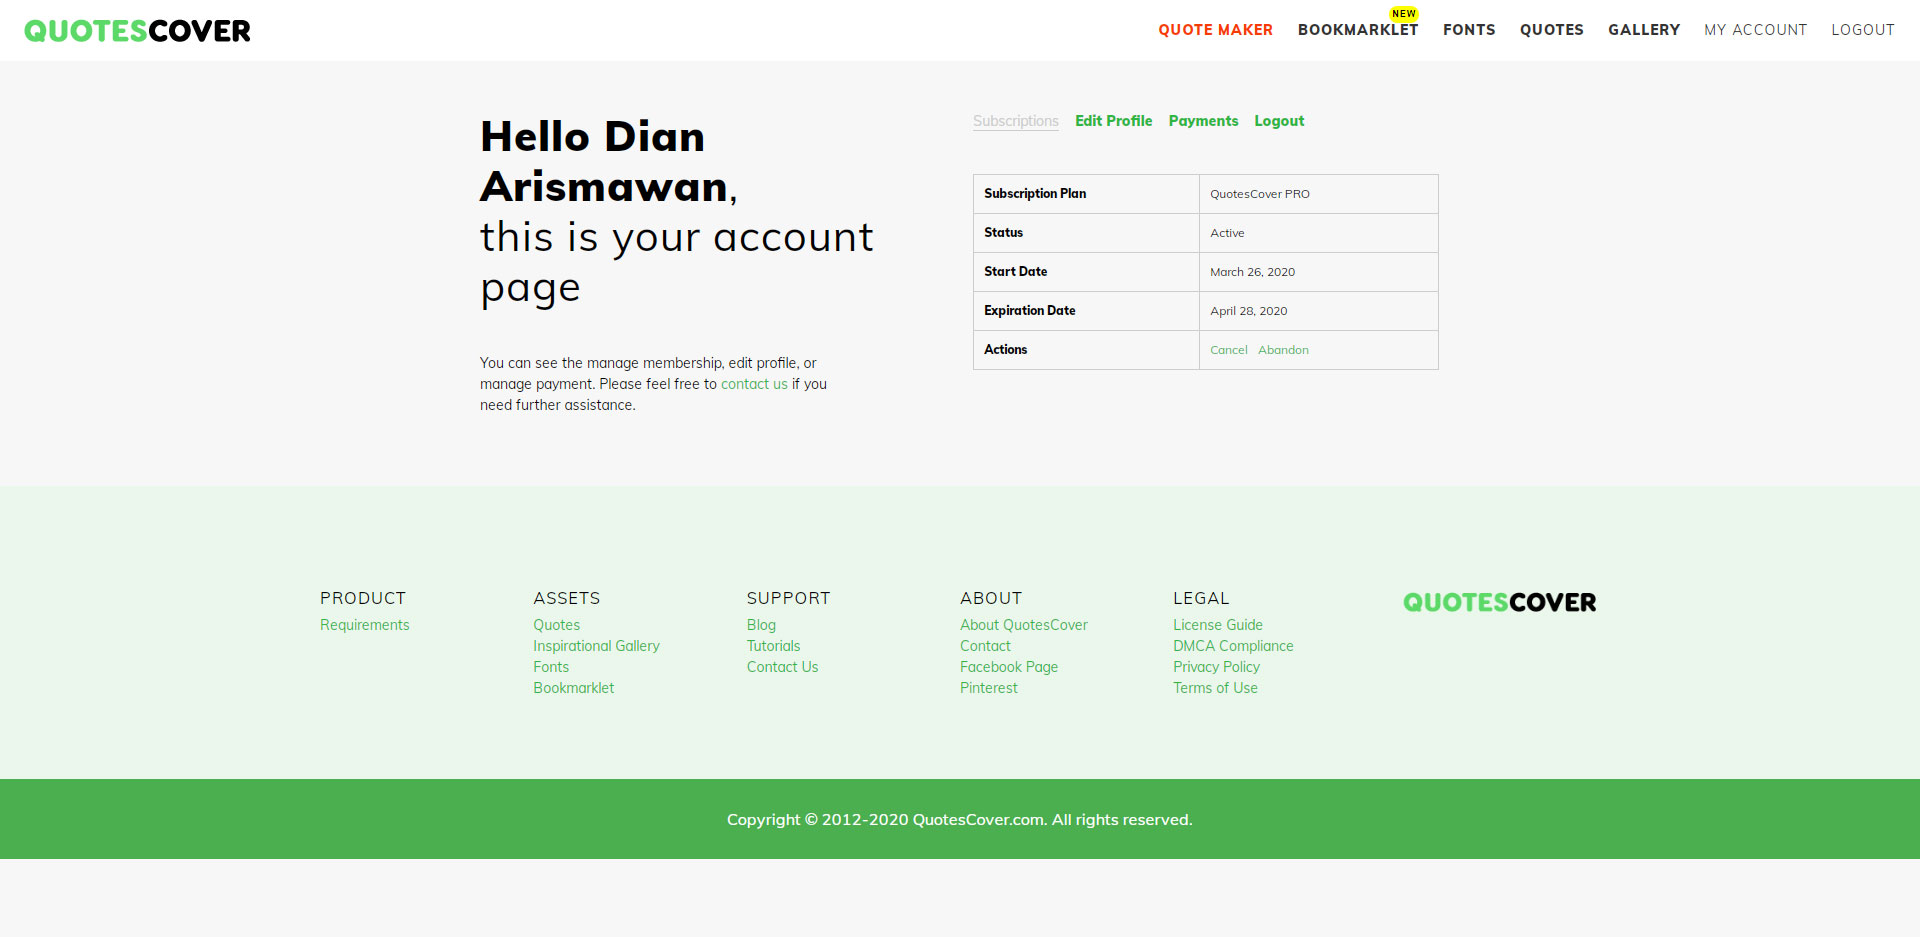 Members Page Screenshot: Account Dashboard